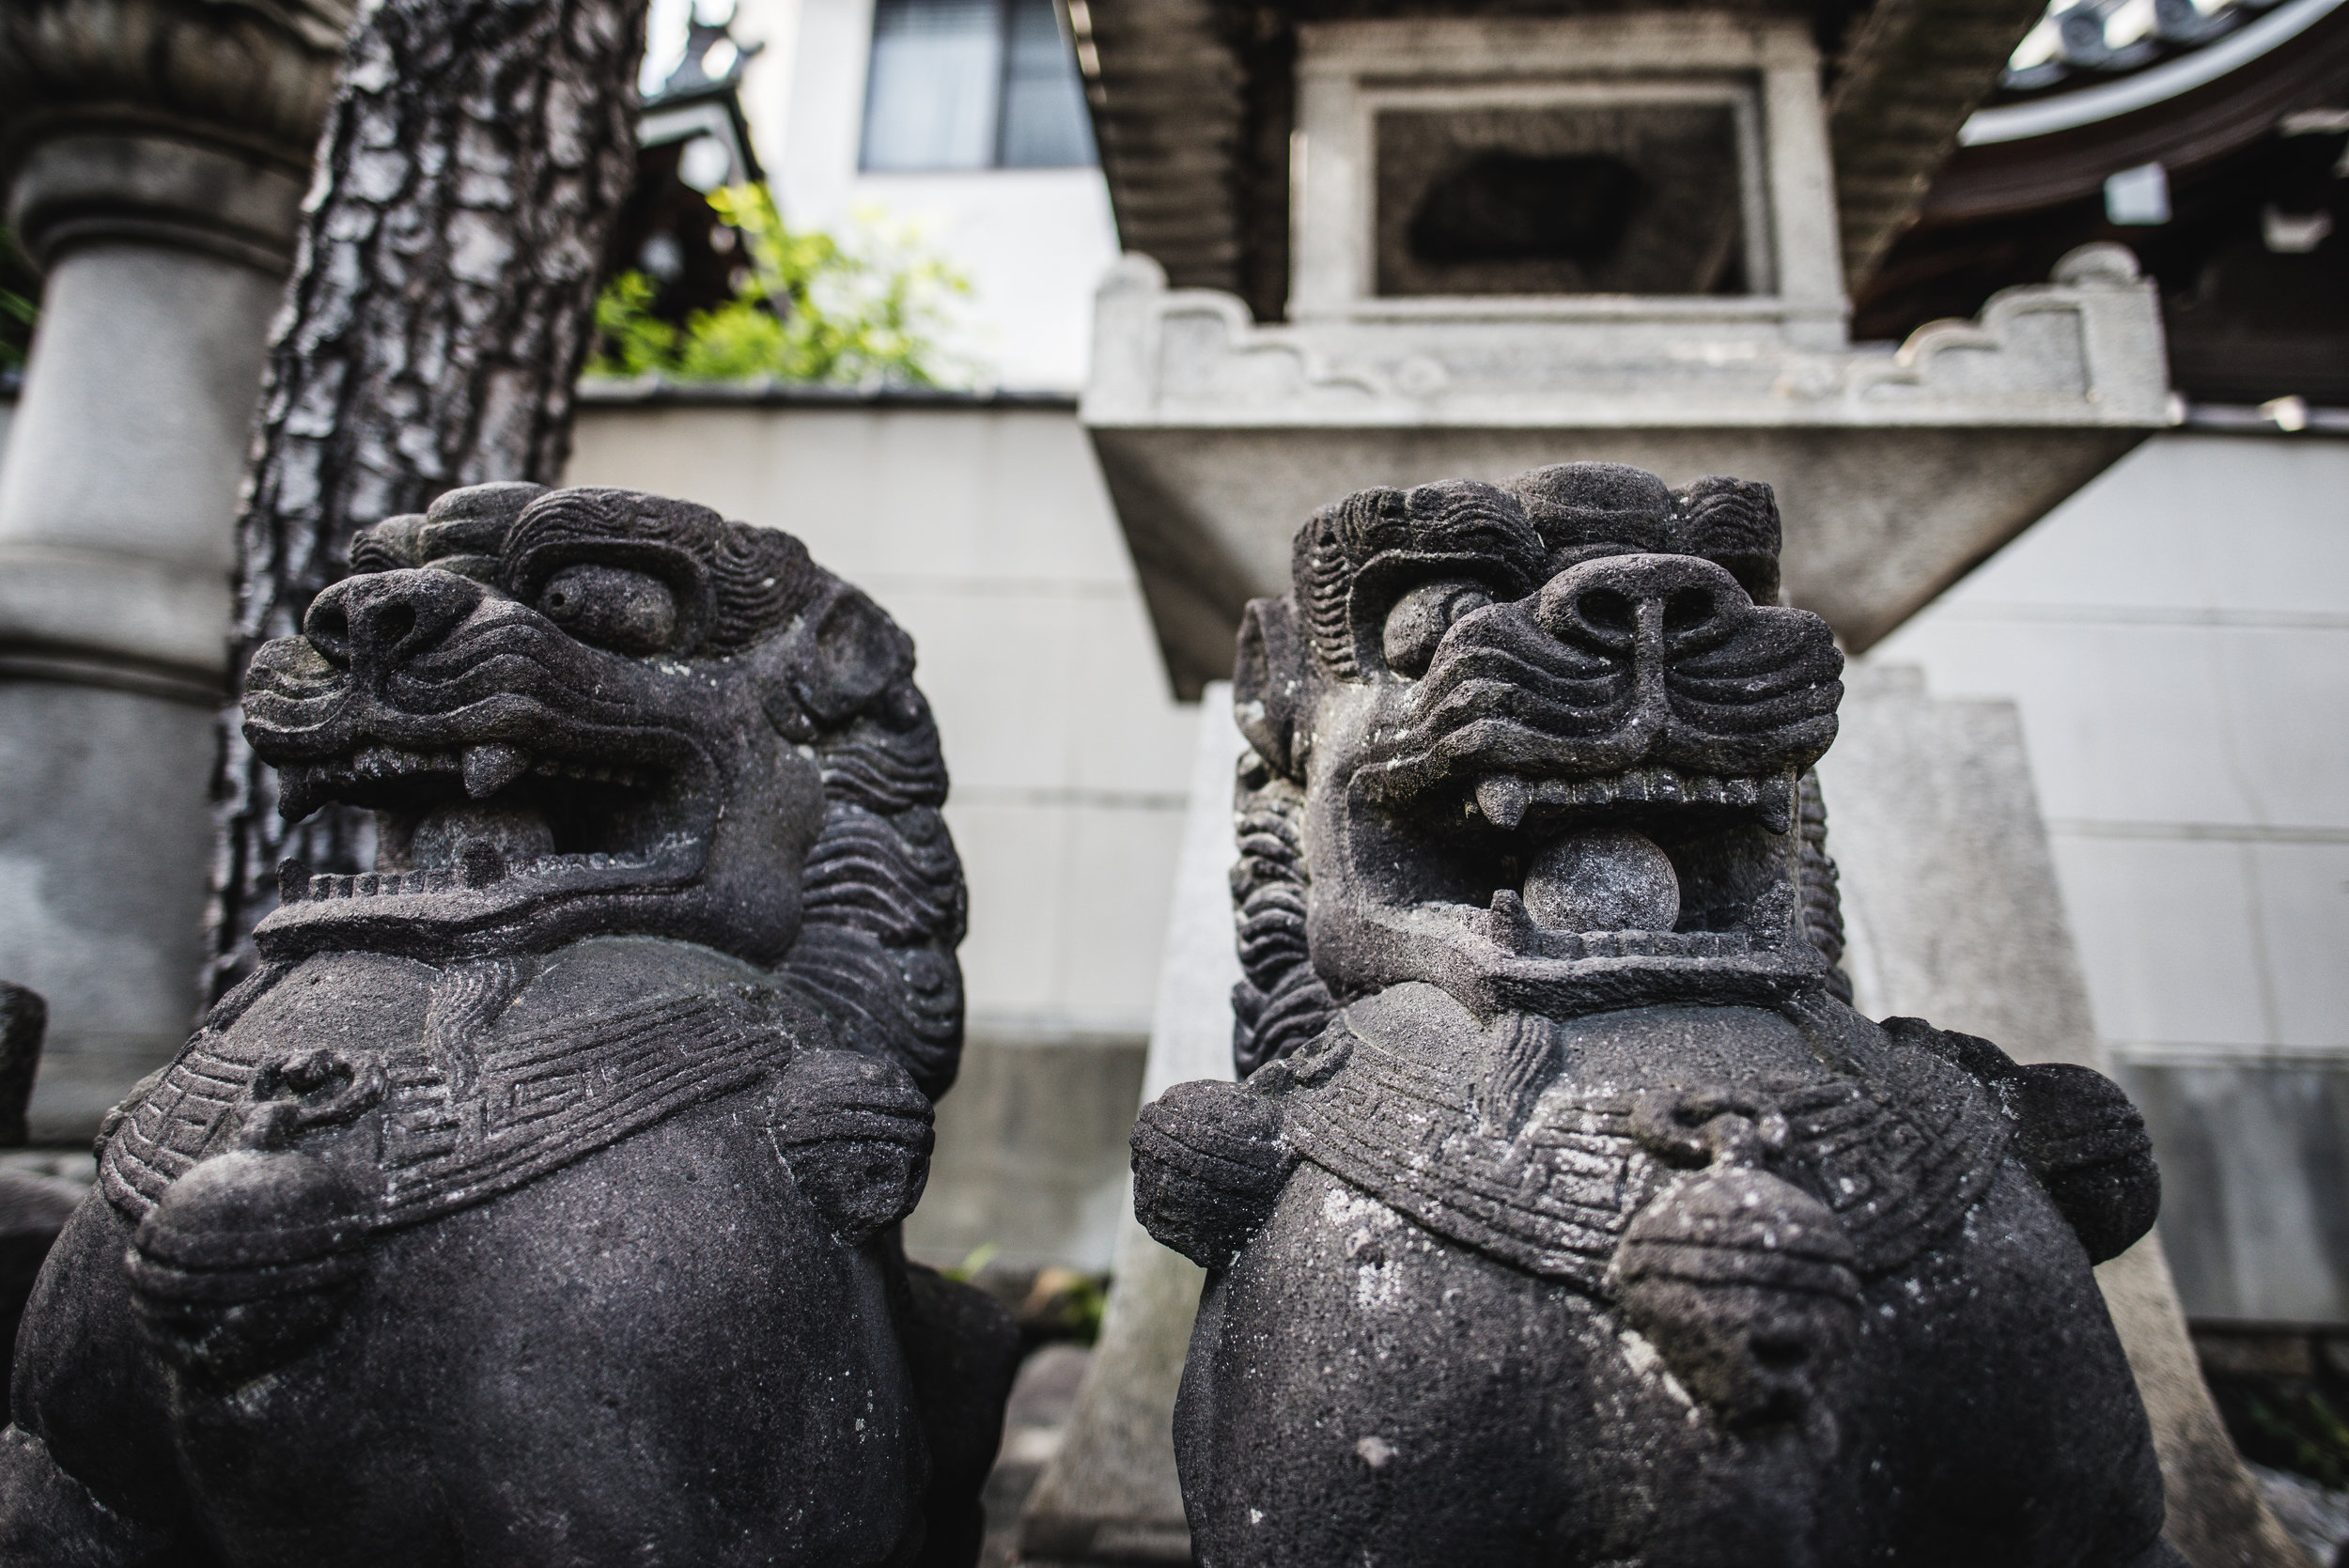 Komainu (狛犬), lion-dogs, are statue pairs of lion-like creatures guarding the entrance or the inner shrine of many Japanese homes and Shinto shrines